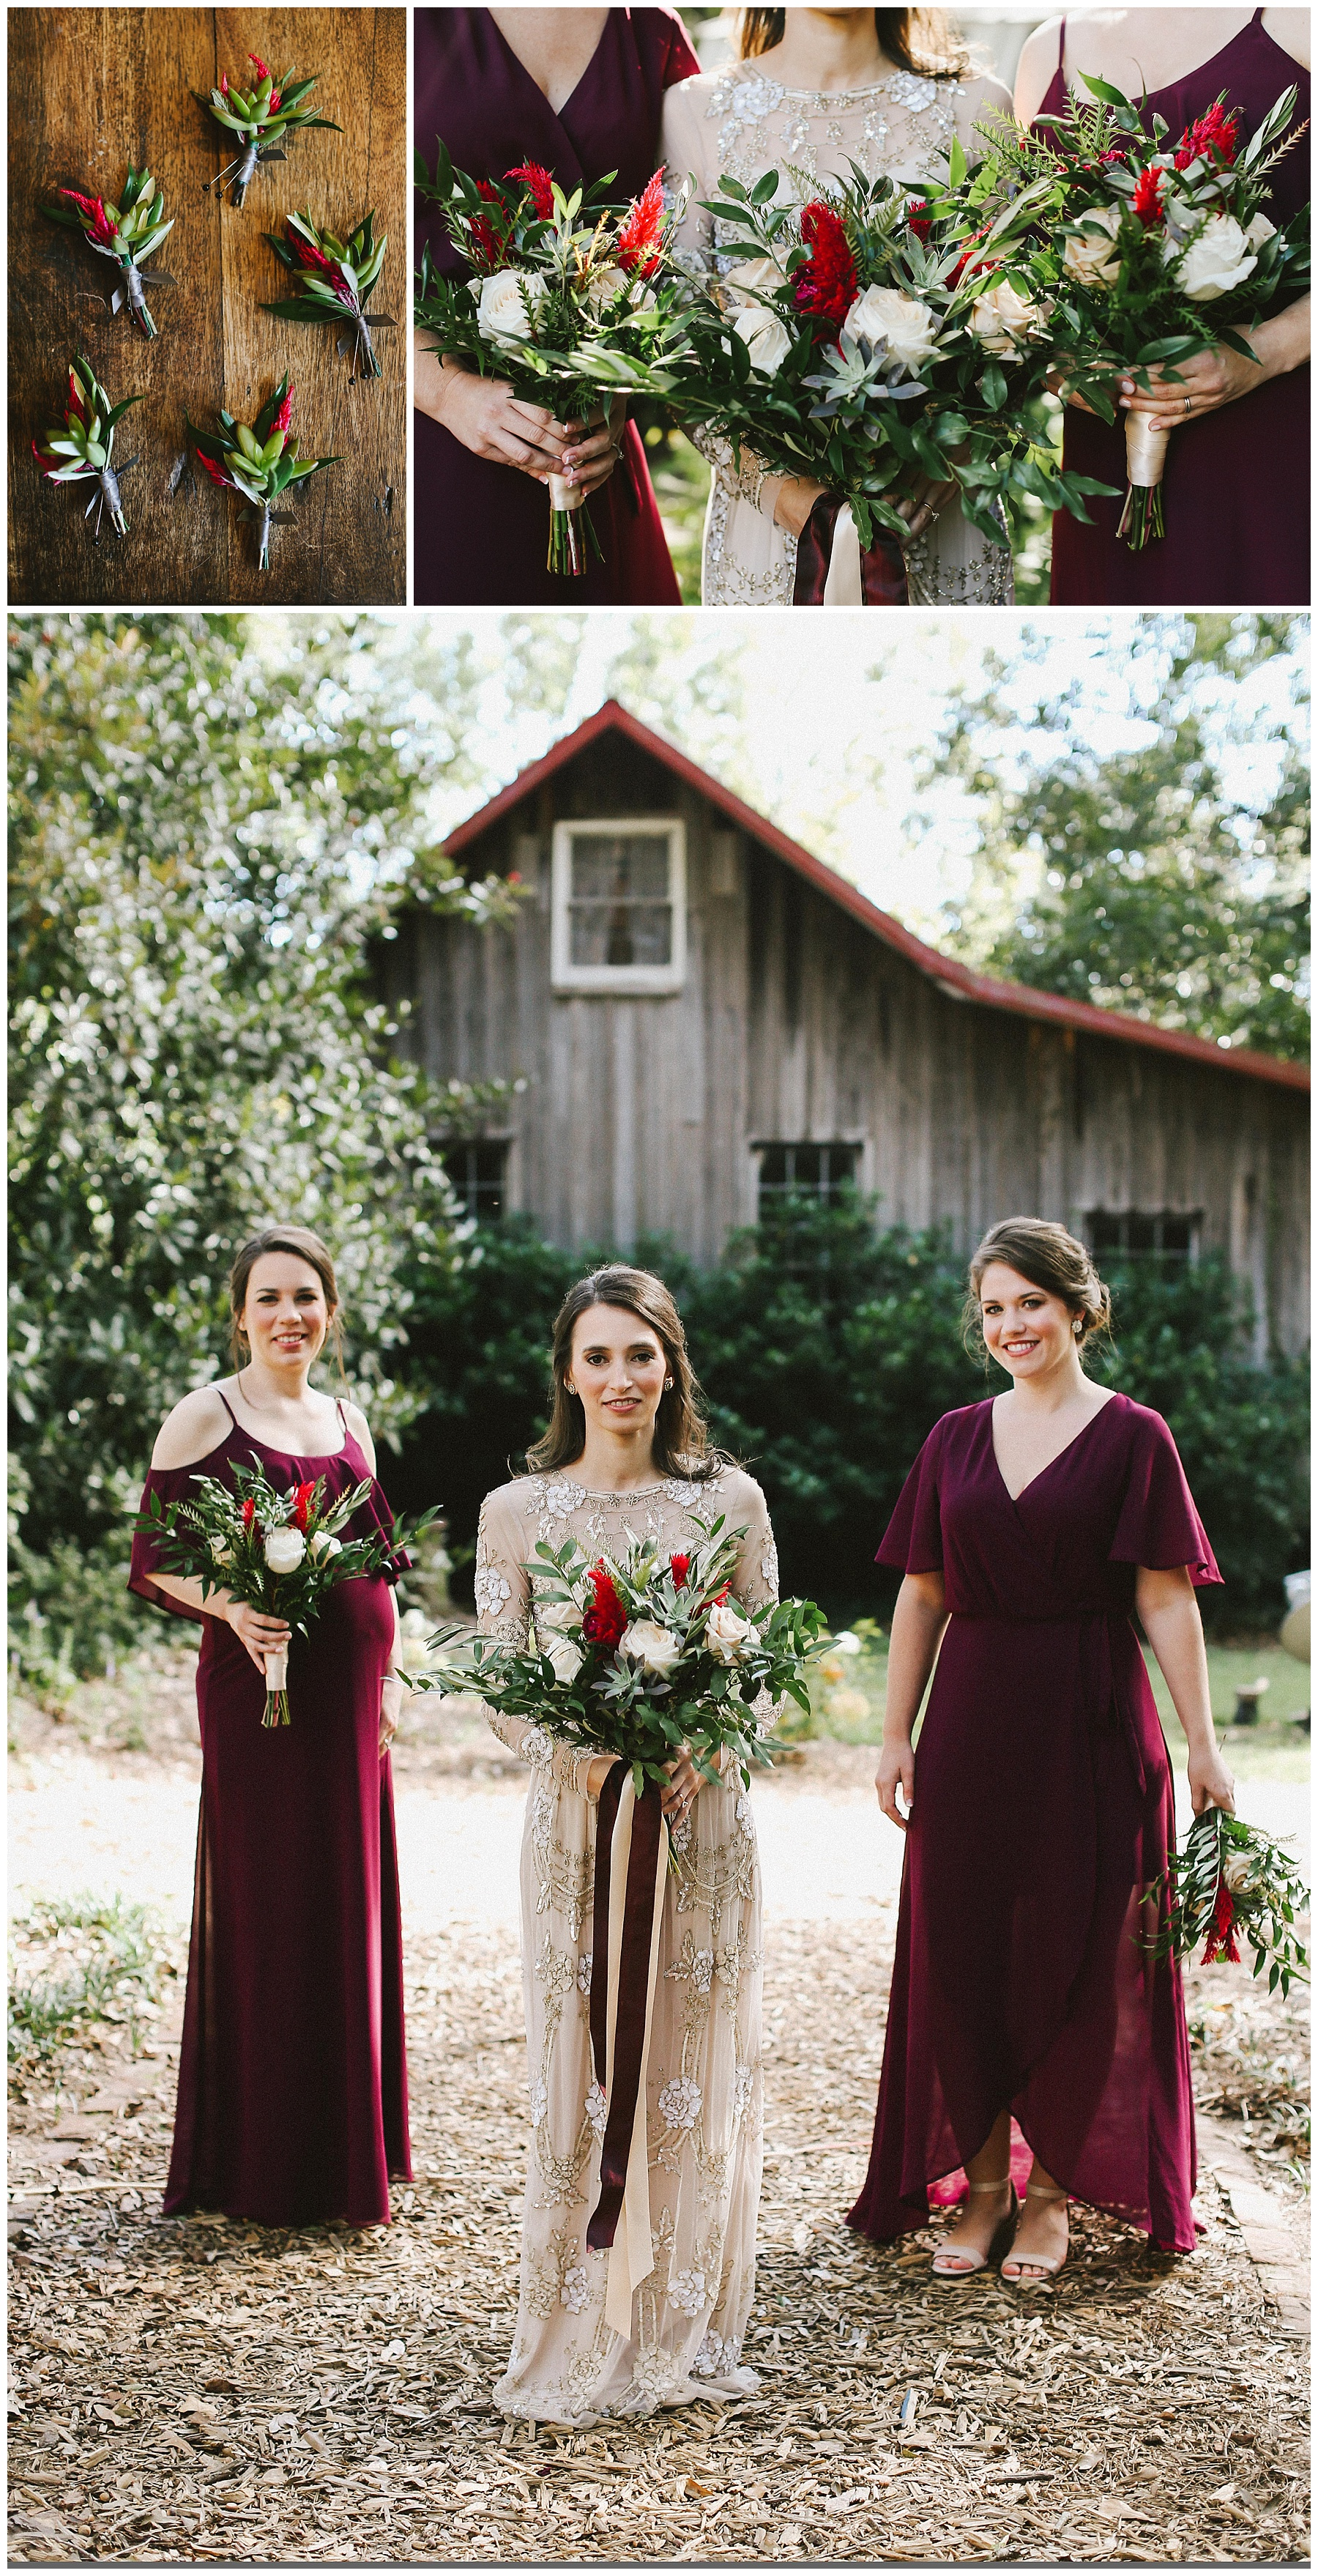 2018-01-31_0001 Christine & Drew: An intimate and meaningful Alabama Wedding Blog Invision Events Weddings    invision_events, birmingham_al, auburn_al, alabama, atlanta_ga, atl, georgia, wedding_planner, wedding_designer, weddings, photography, wedding_planning